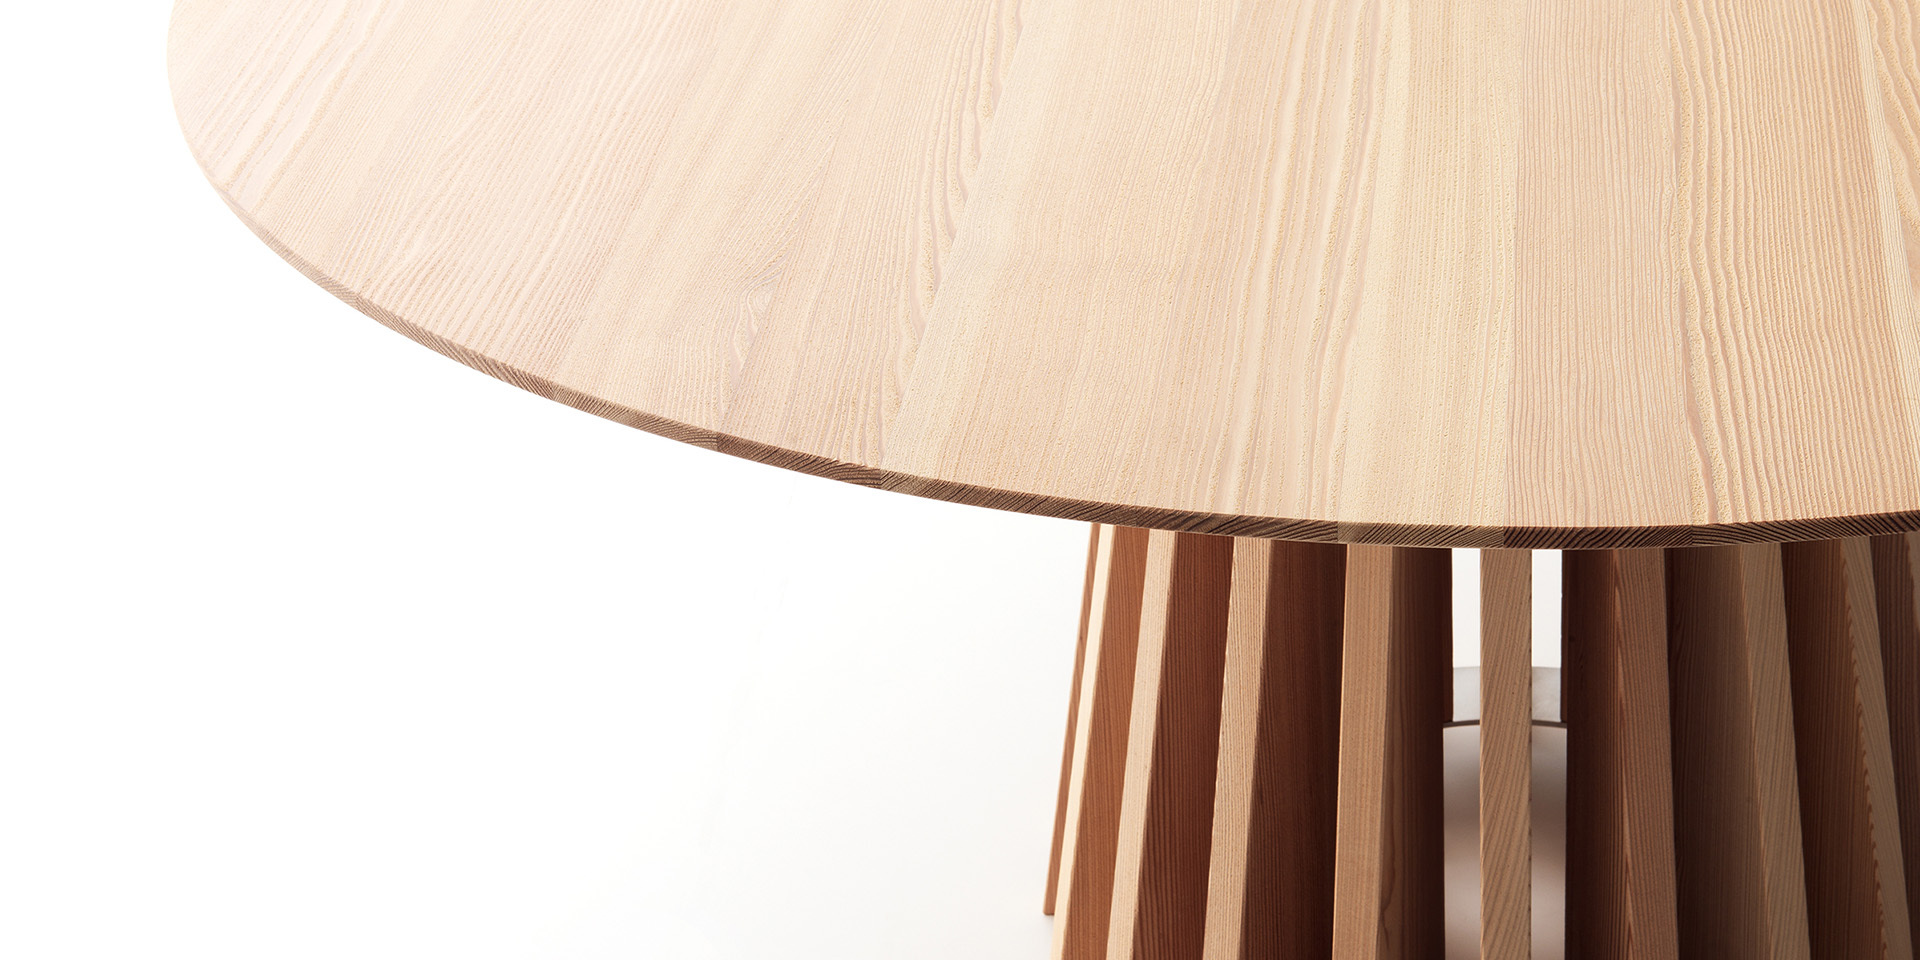 Aria table - Natural larch